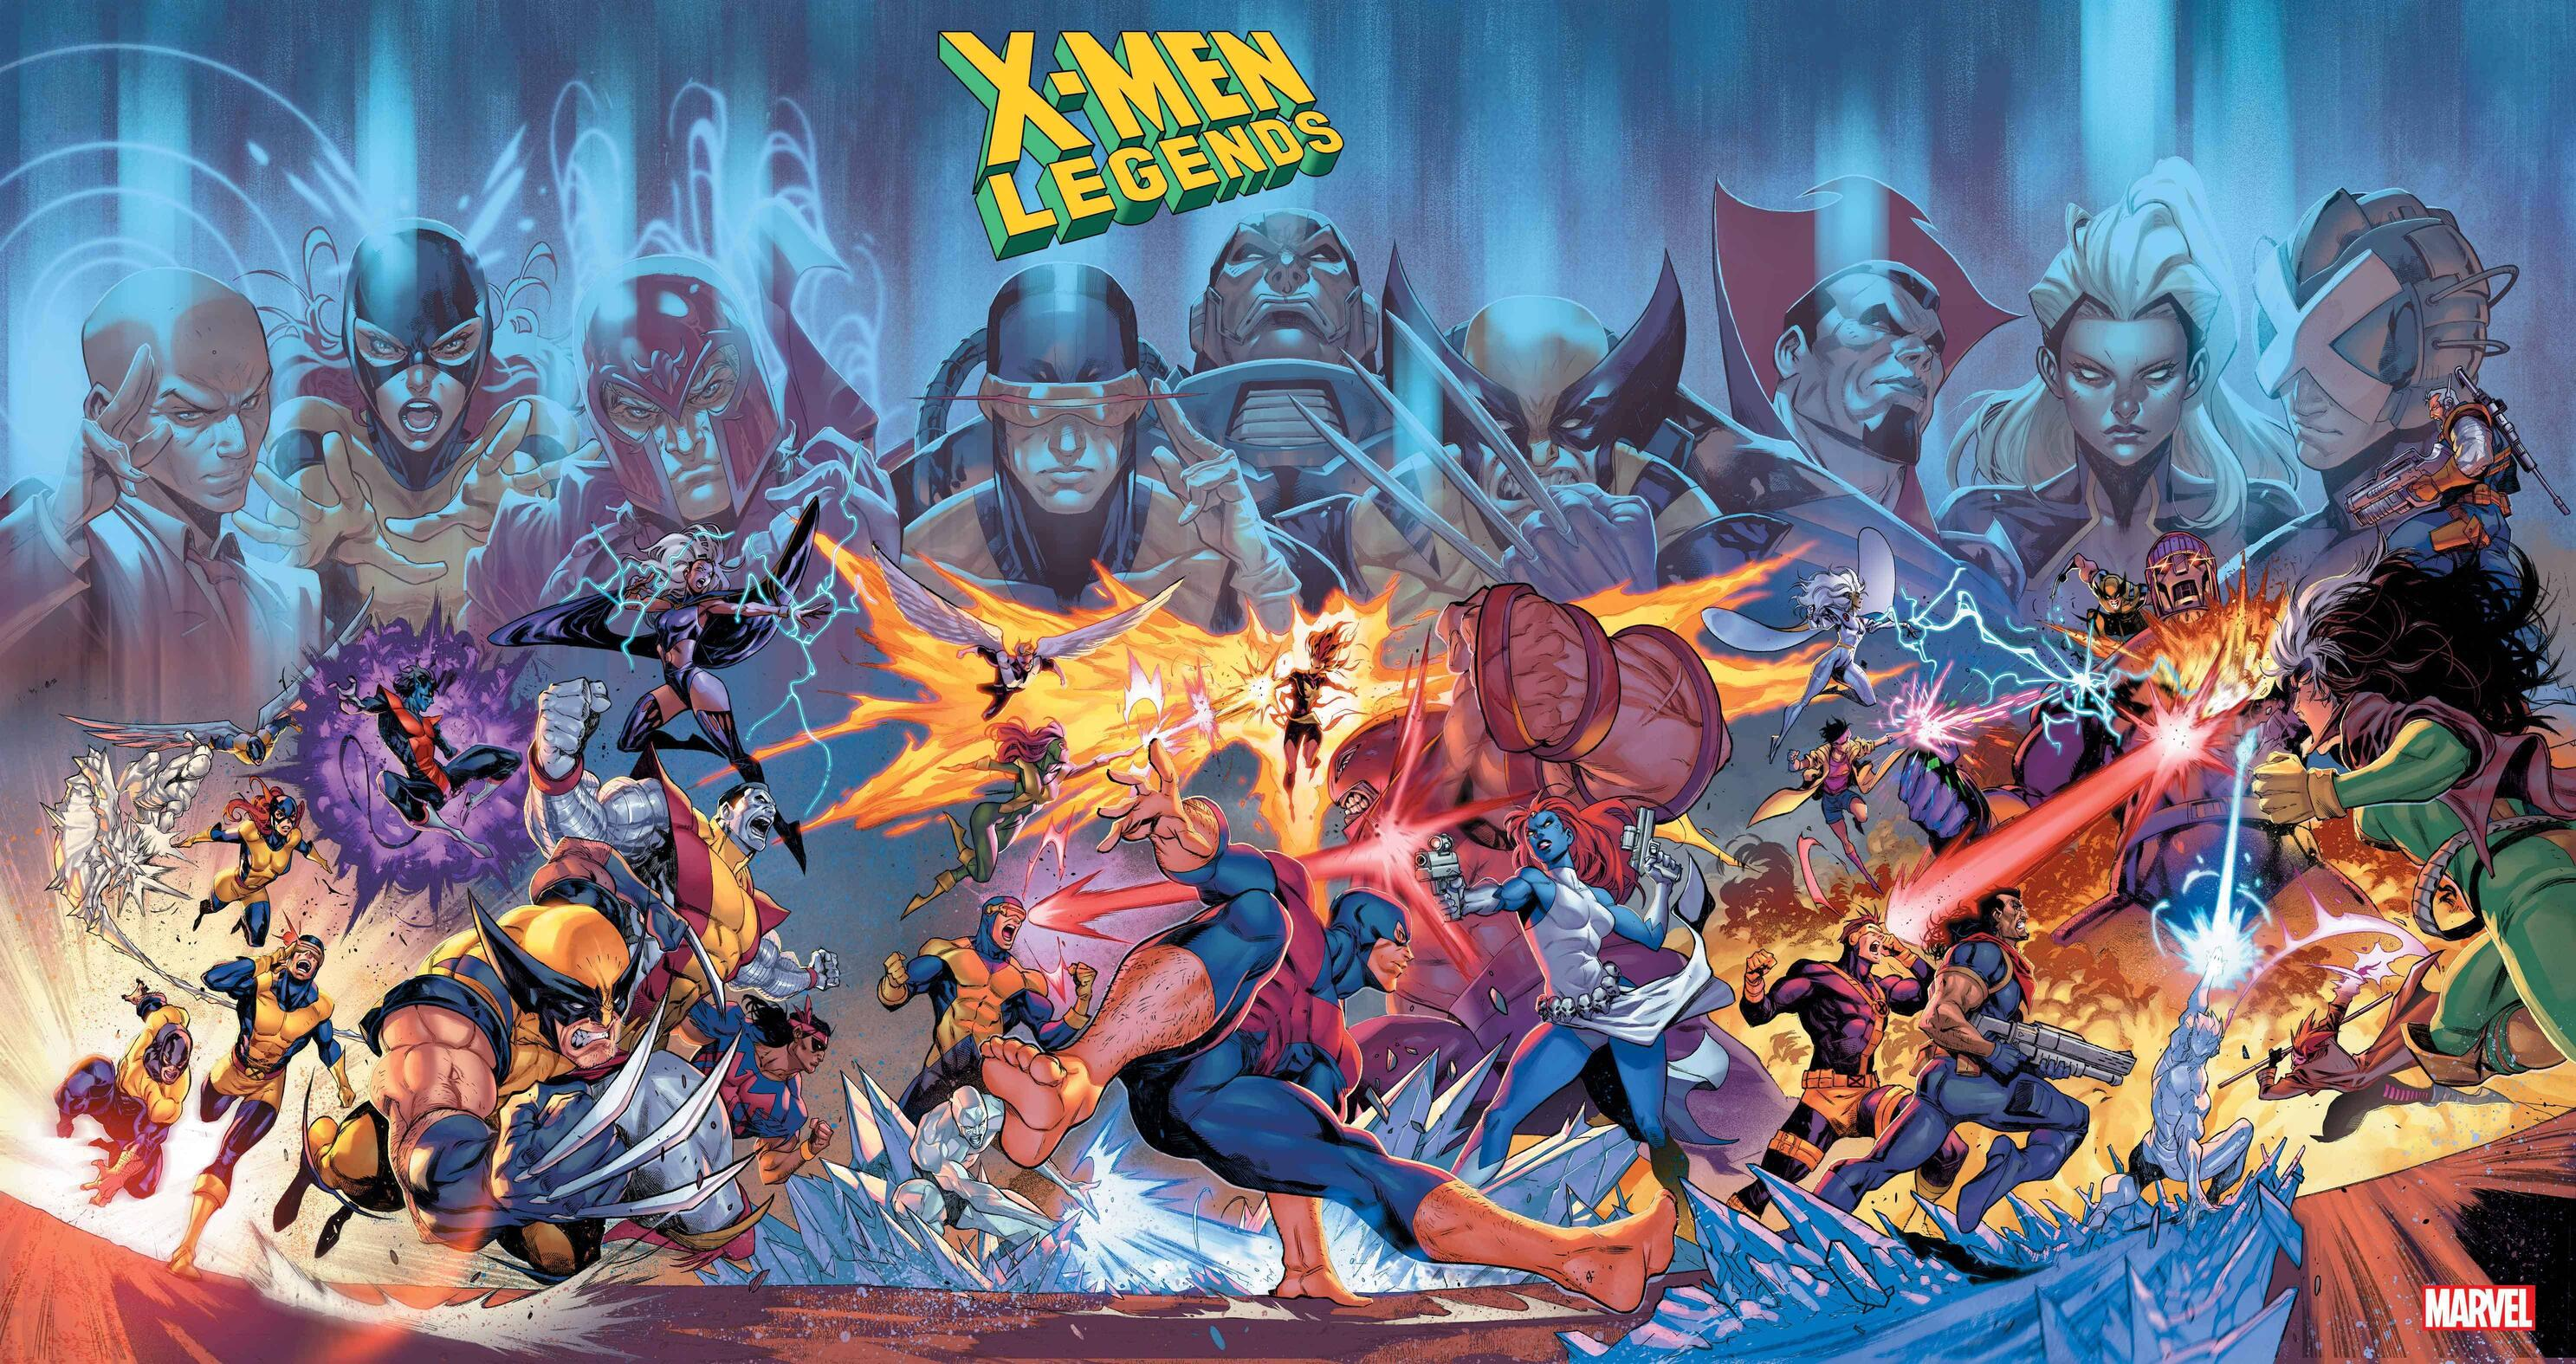 X-Men Legends Iban Coello